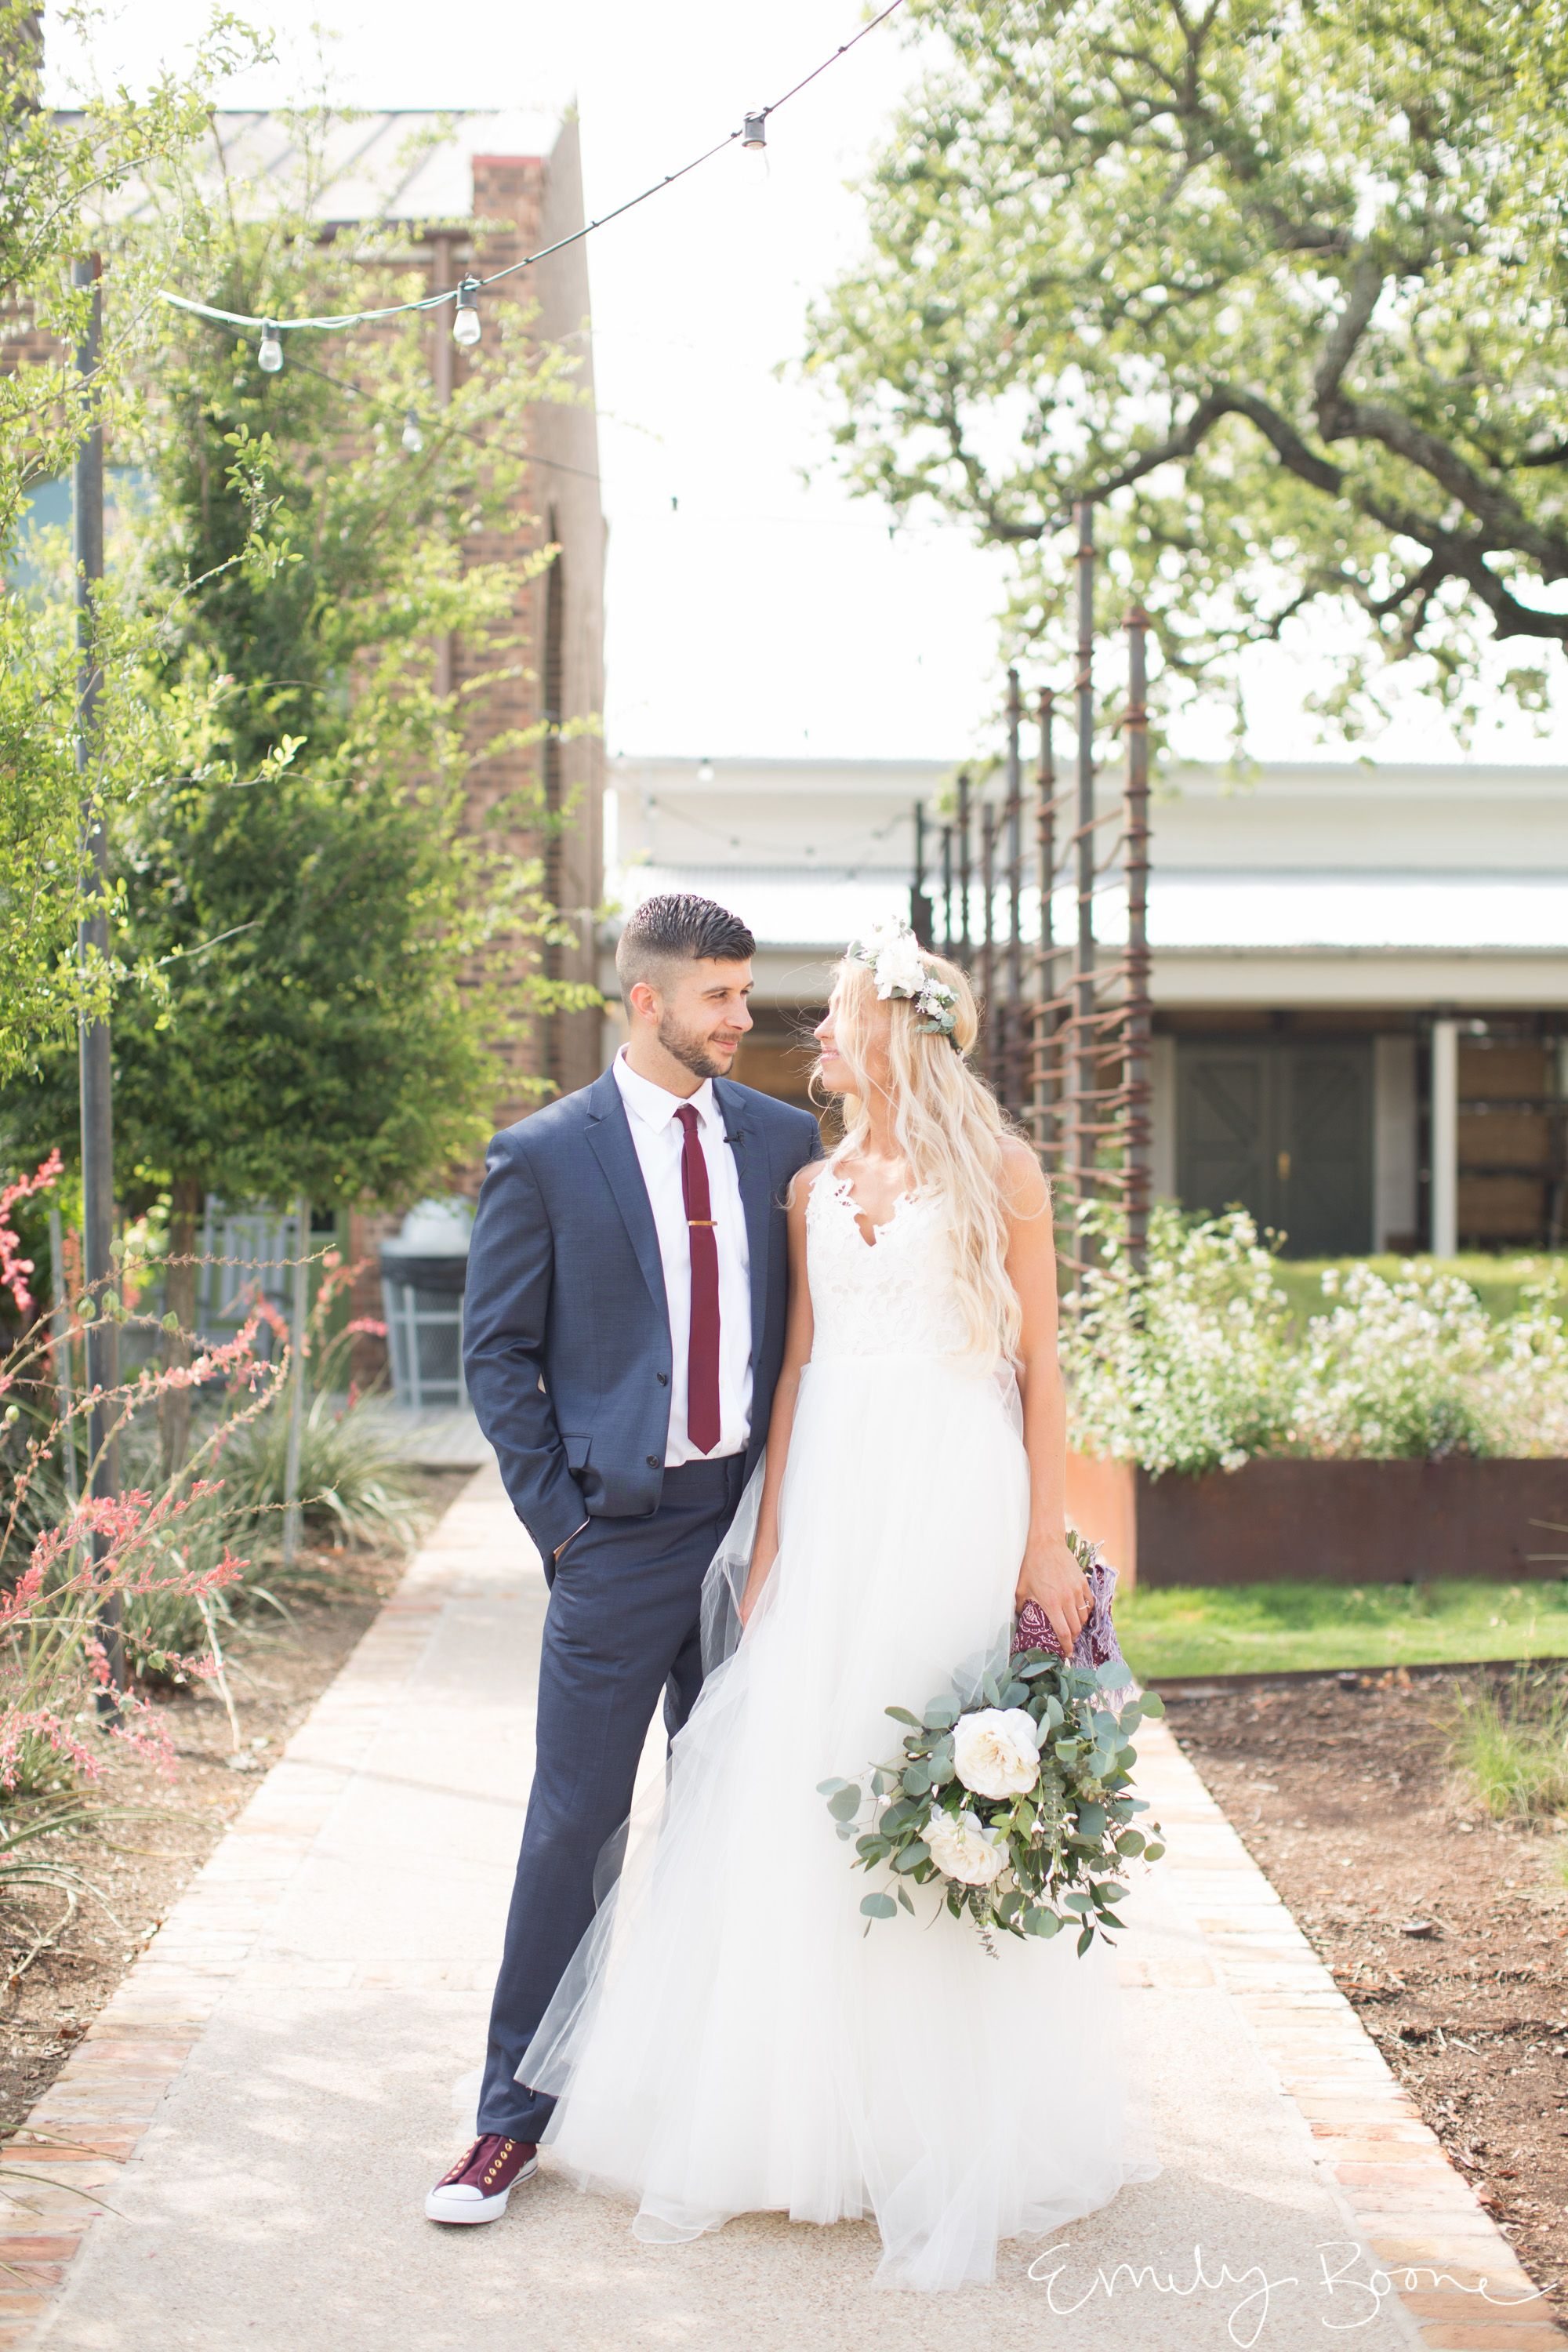 Bride And Groom Portraits Bhldn Dress Sunny Sunday Wedding At Calvary Court College Station College Station Wedding Texas Wedding Photographer Bhldn Dress